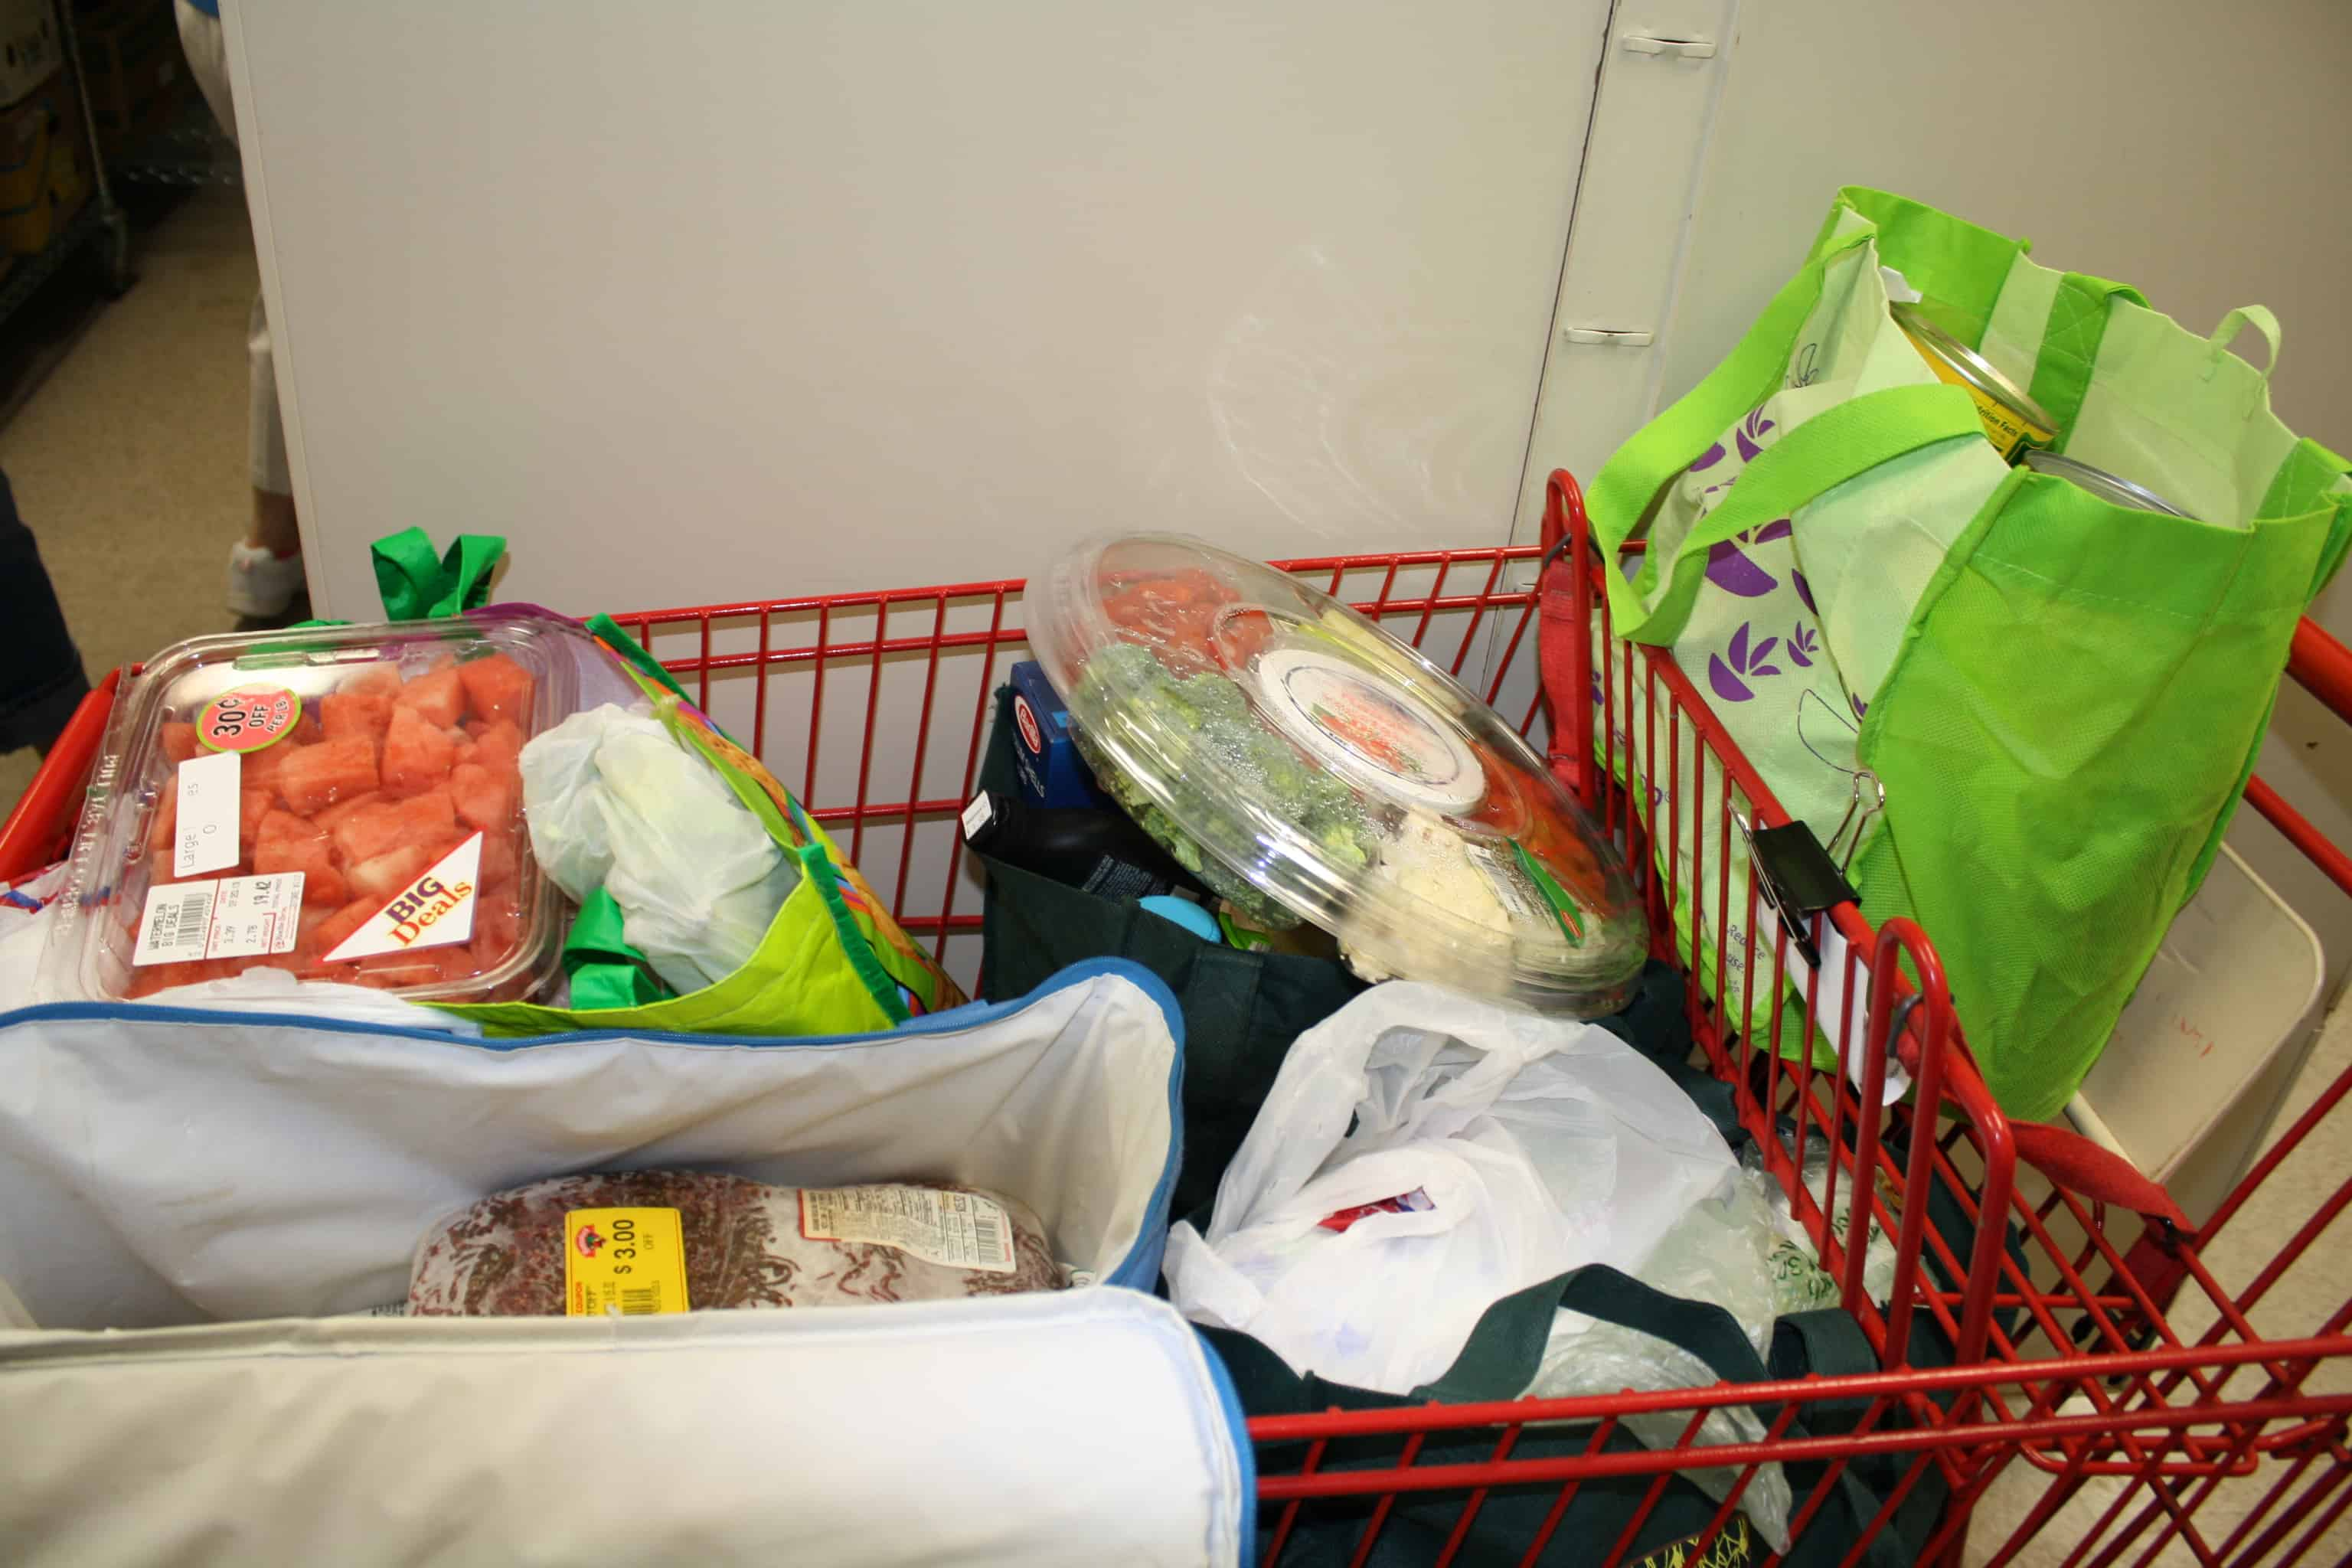 Carriage full of groceries